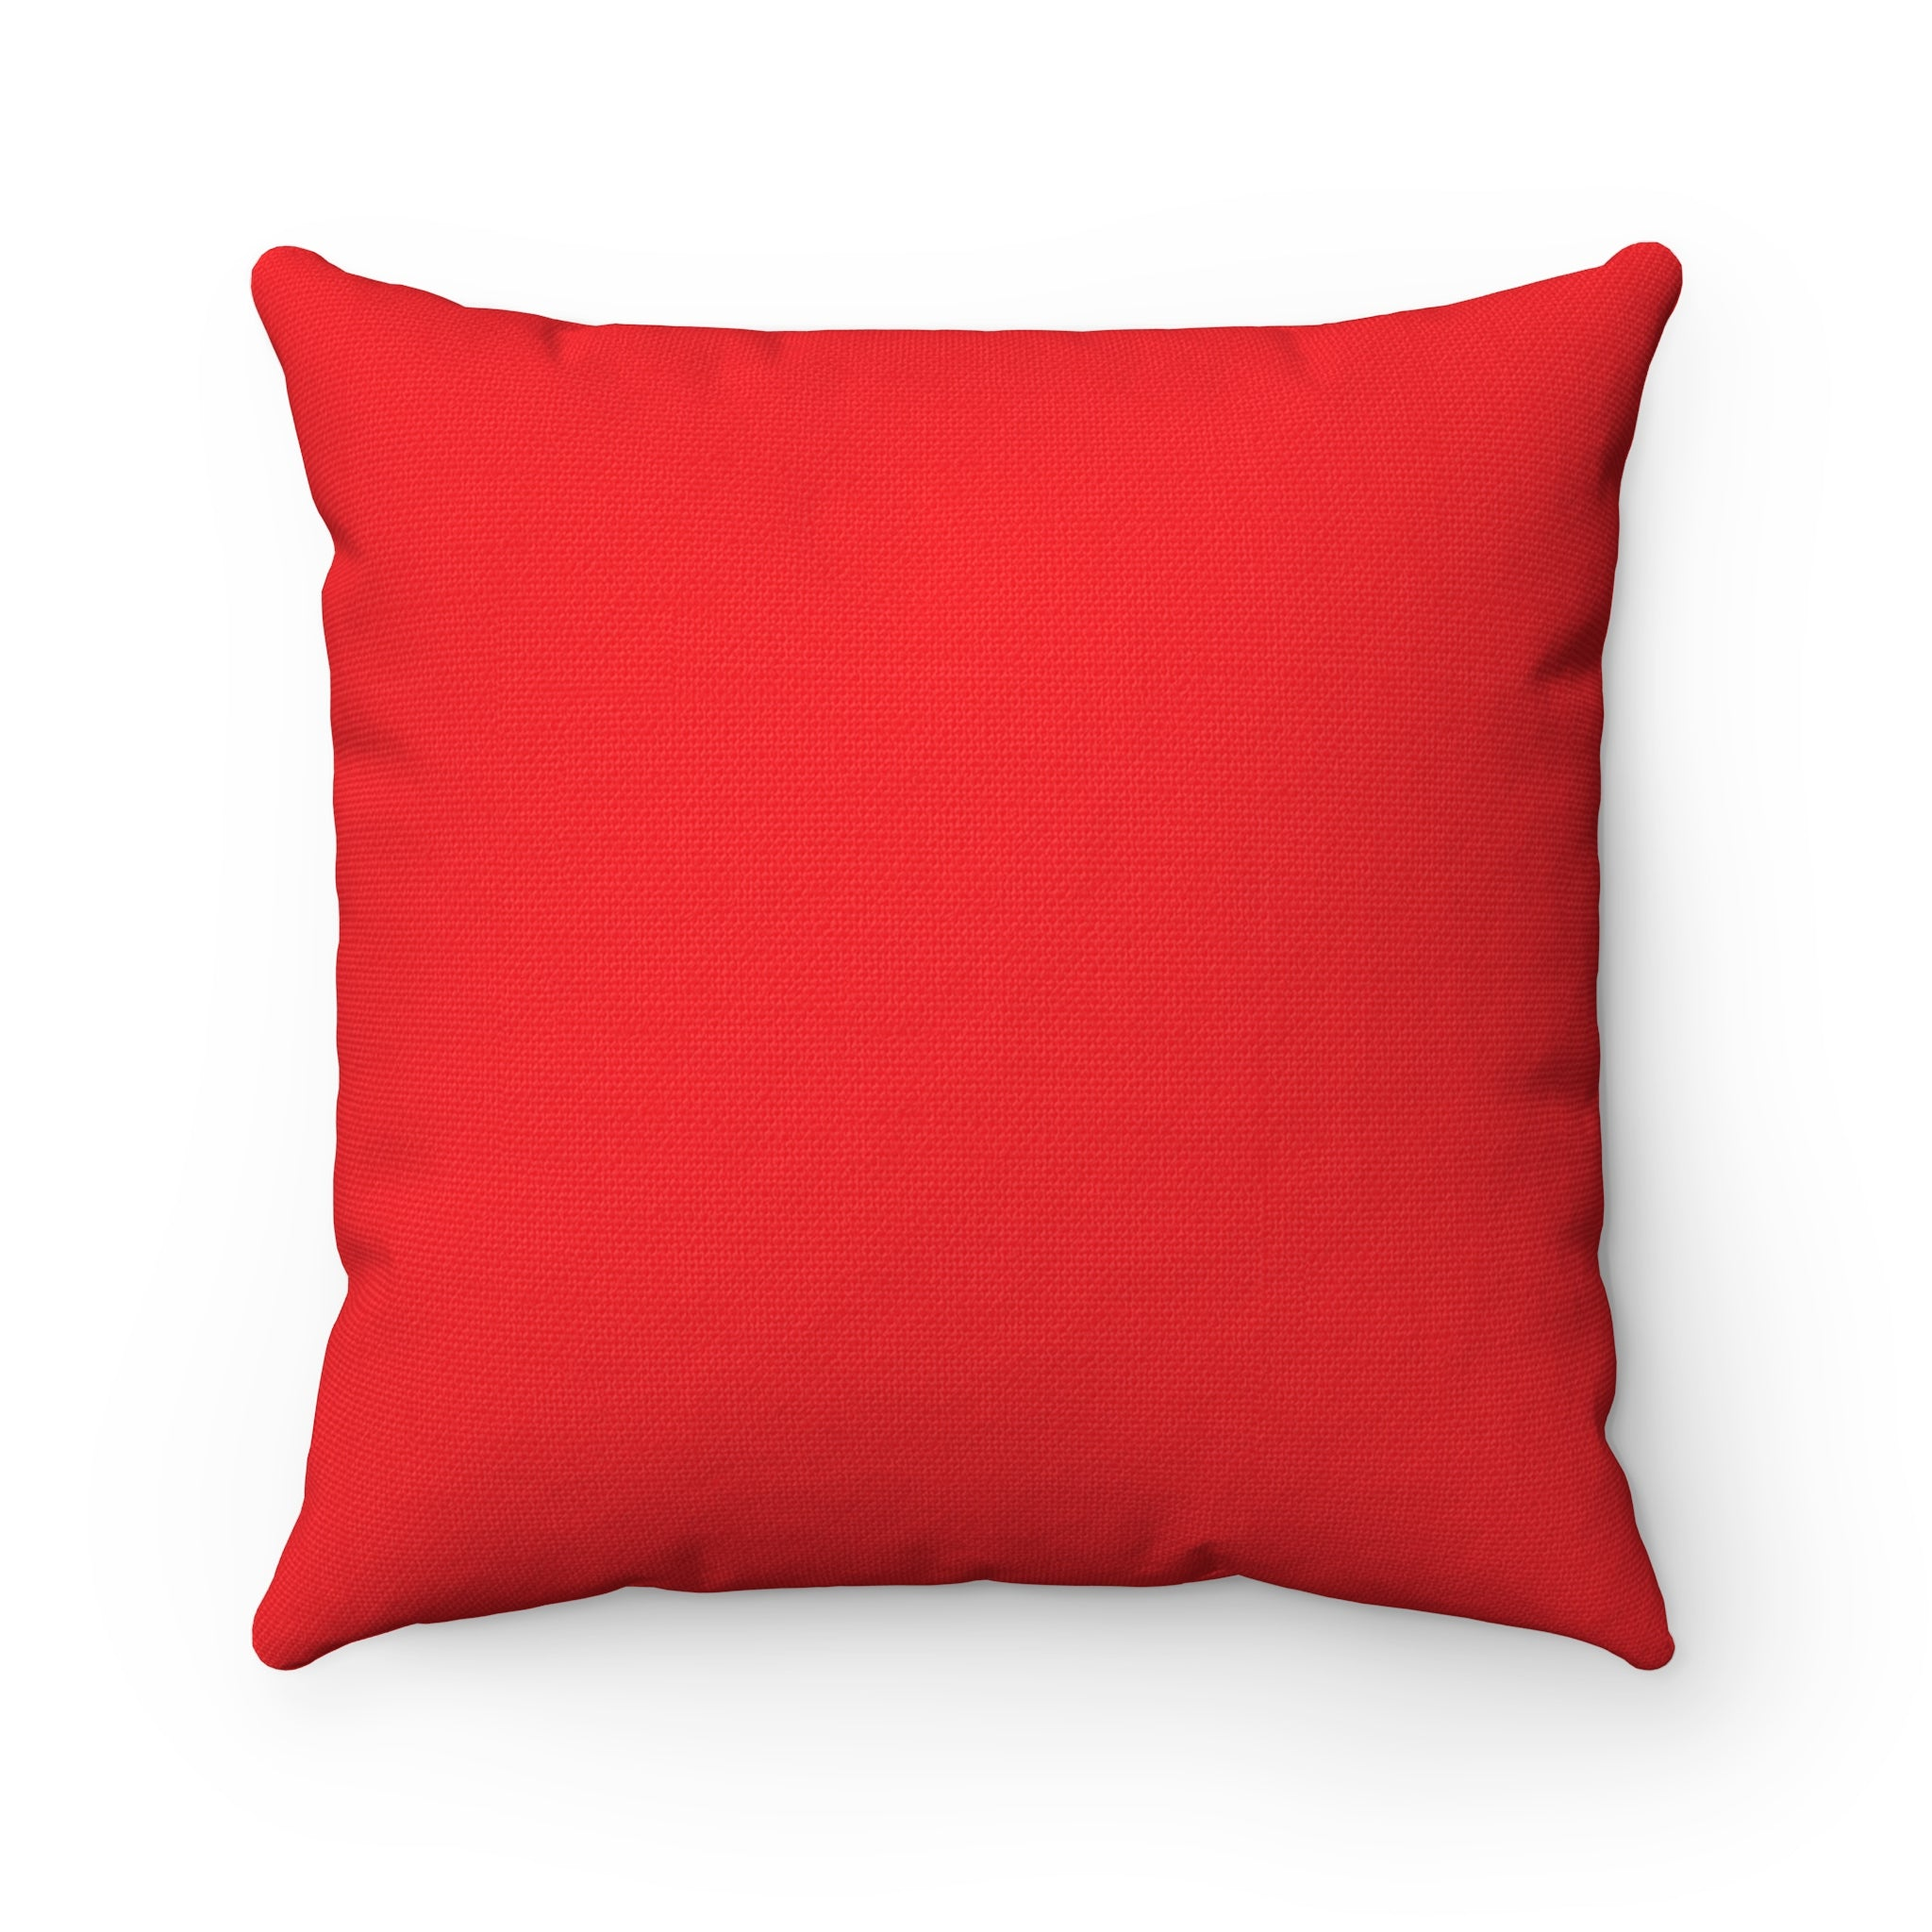 Red Spun Polyester Square Pillow